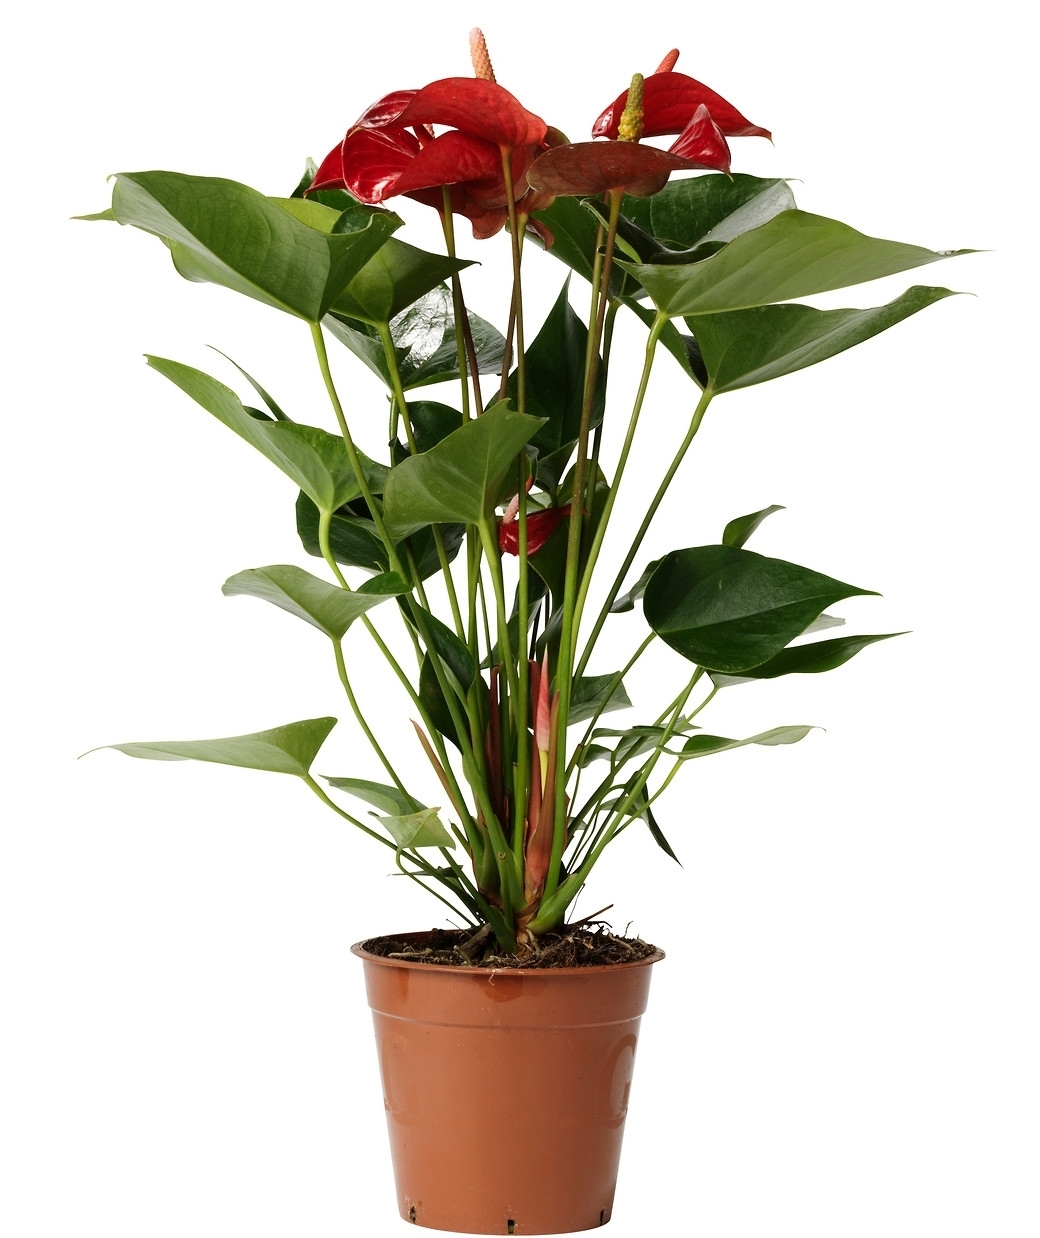 anthurium-potted-plant-flamingo-plant__0096591_pe236446_s5.jpg